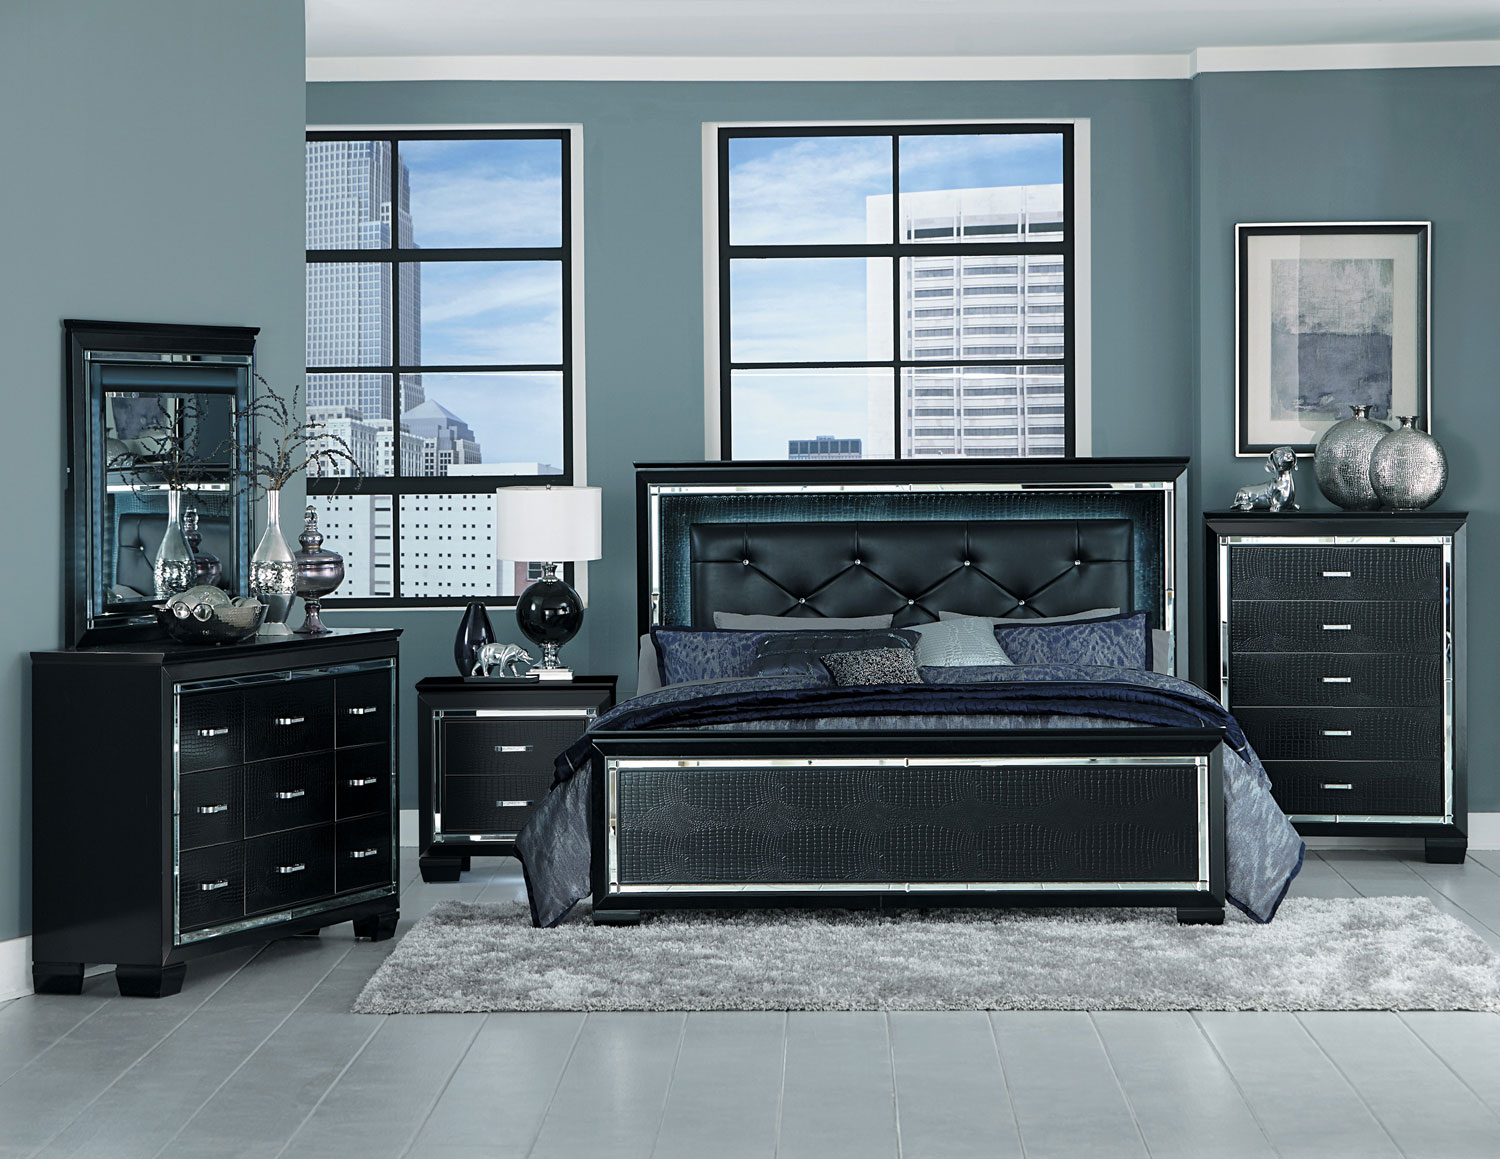 Homelegance Allura Bedroom Set with LED Lighting - Black